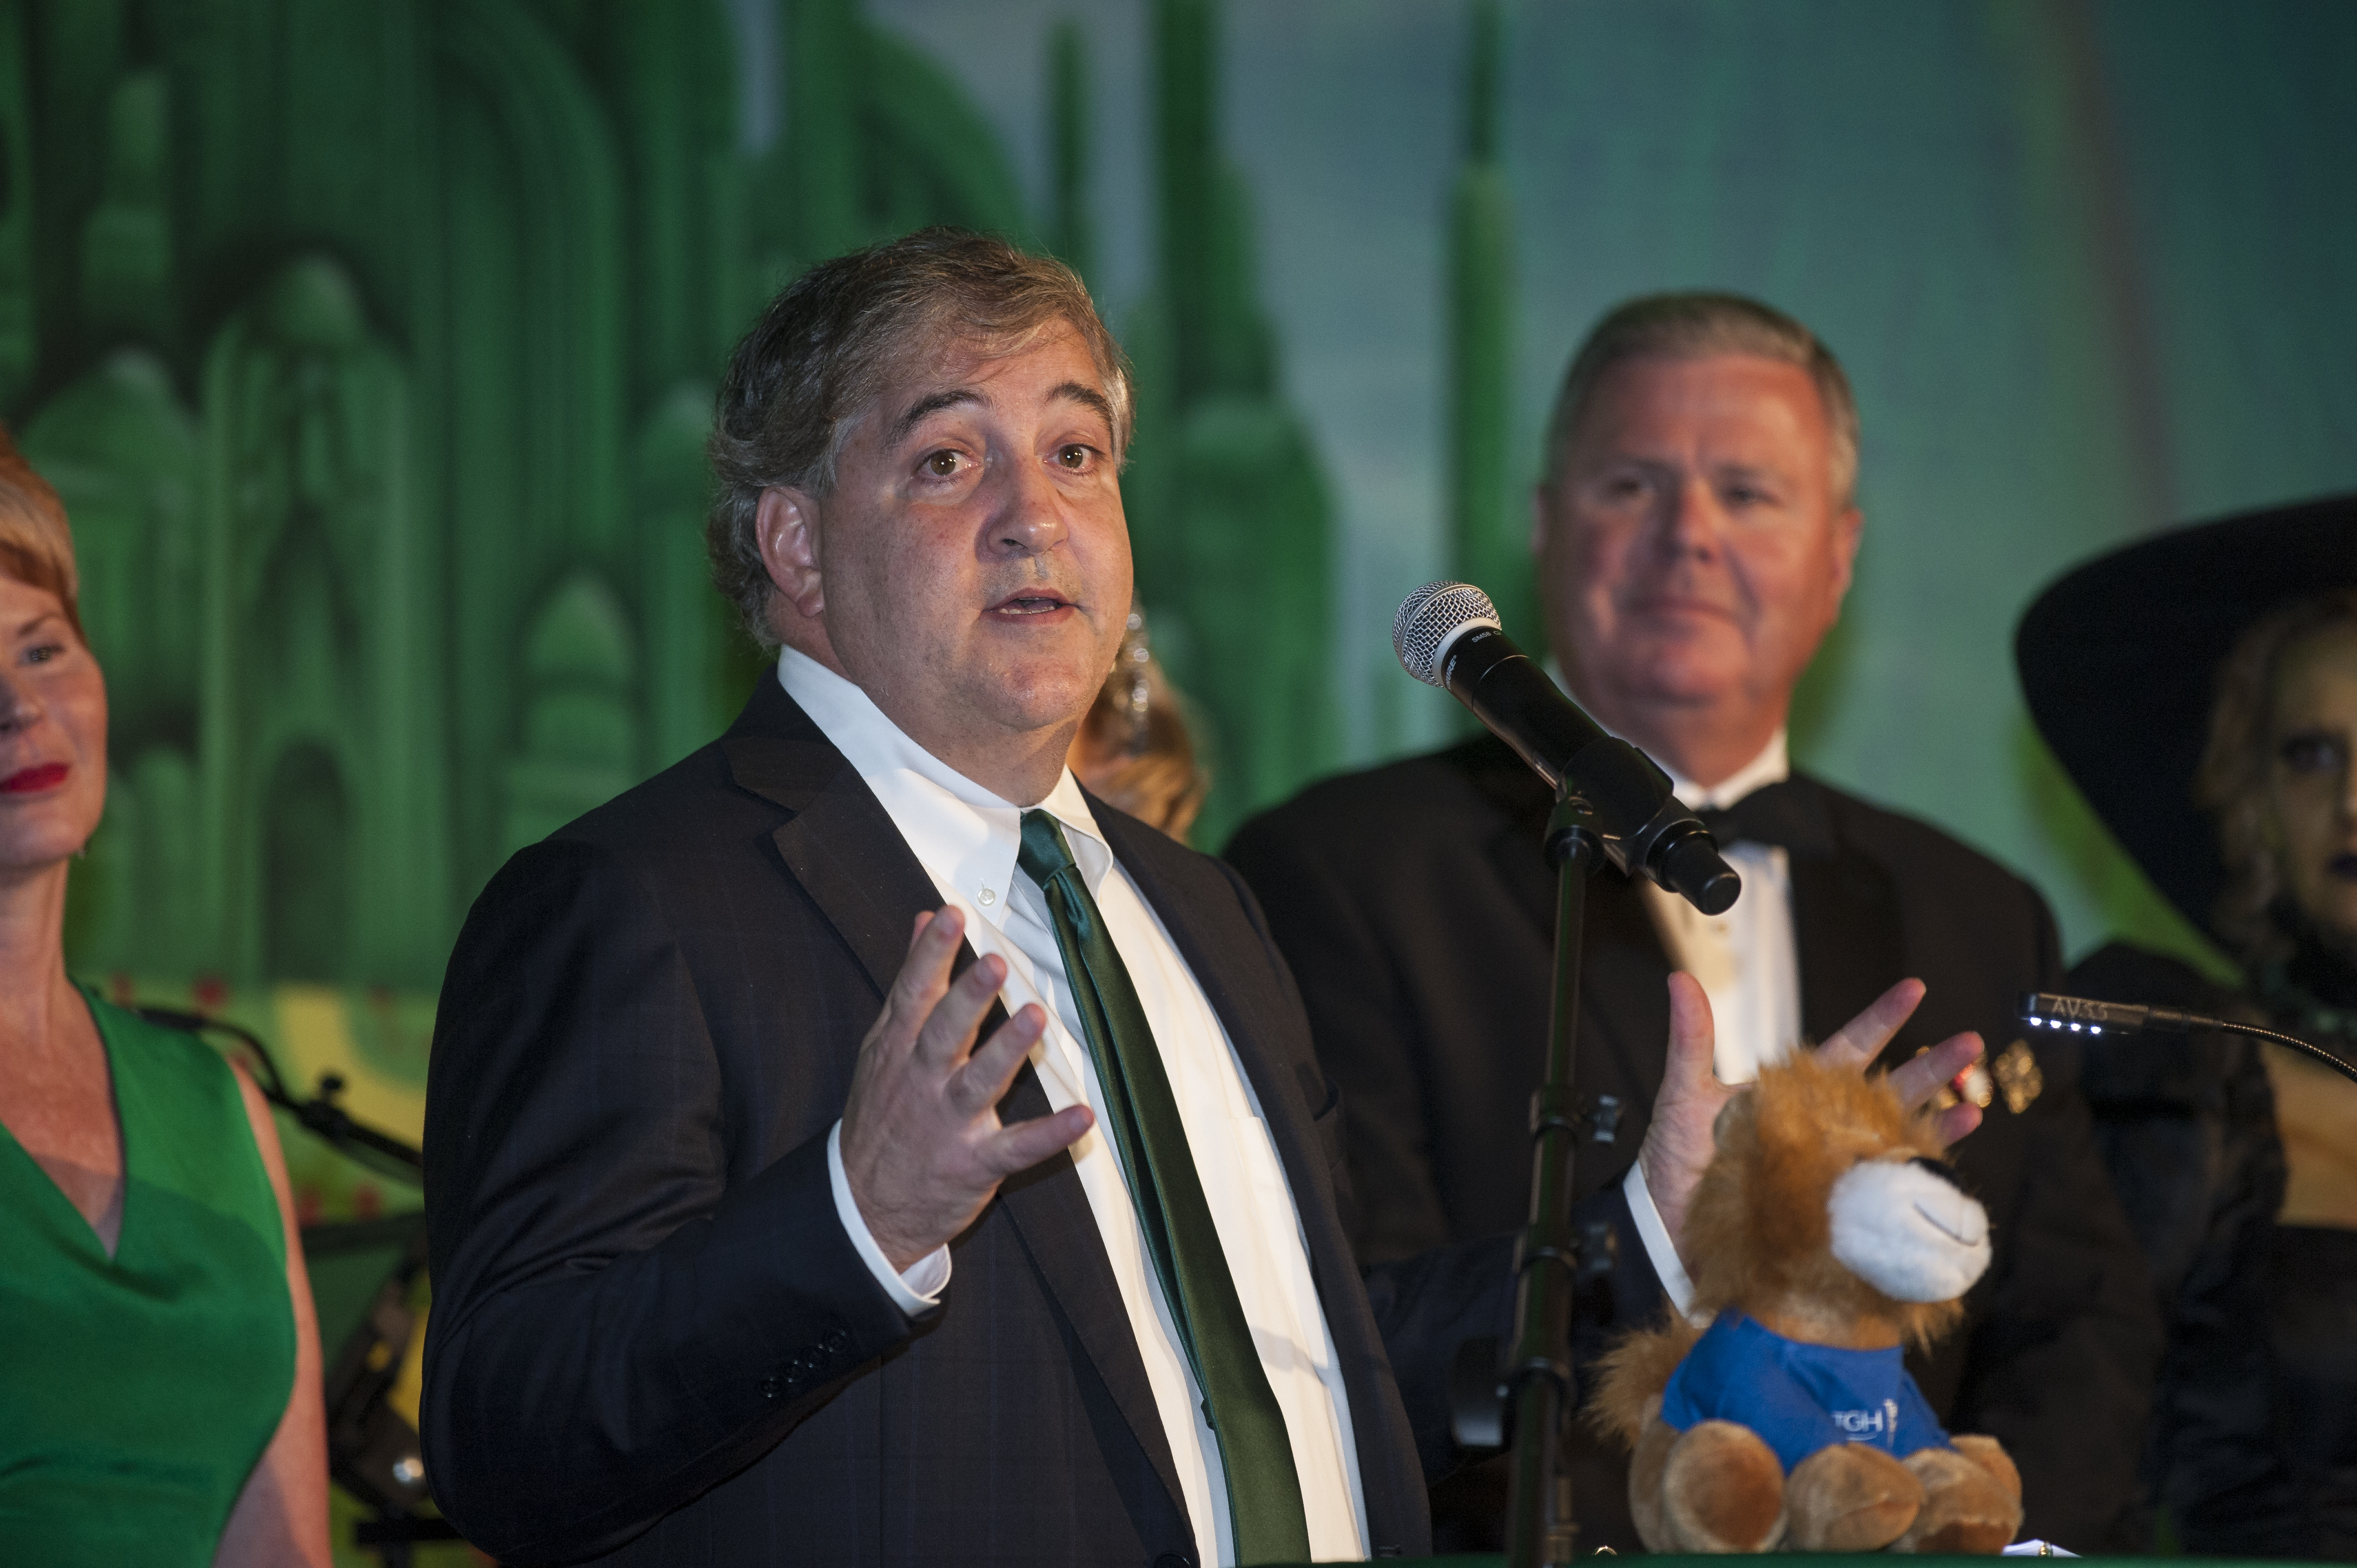 Jeff Vinik speaks as ceremonies begin during the 2017 TGH Foundation gala fundraiser Wizard of Oz production.